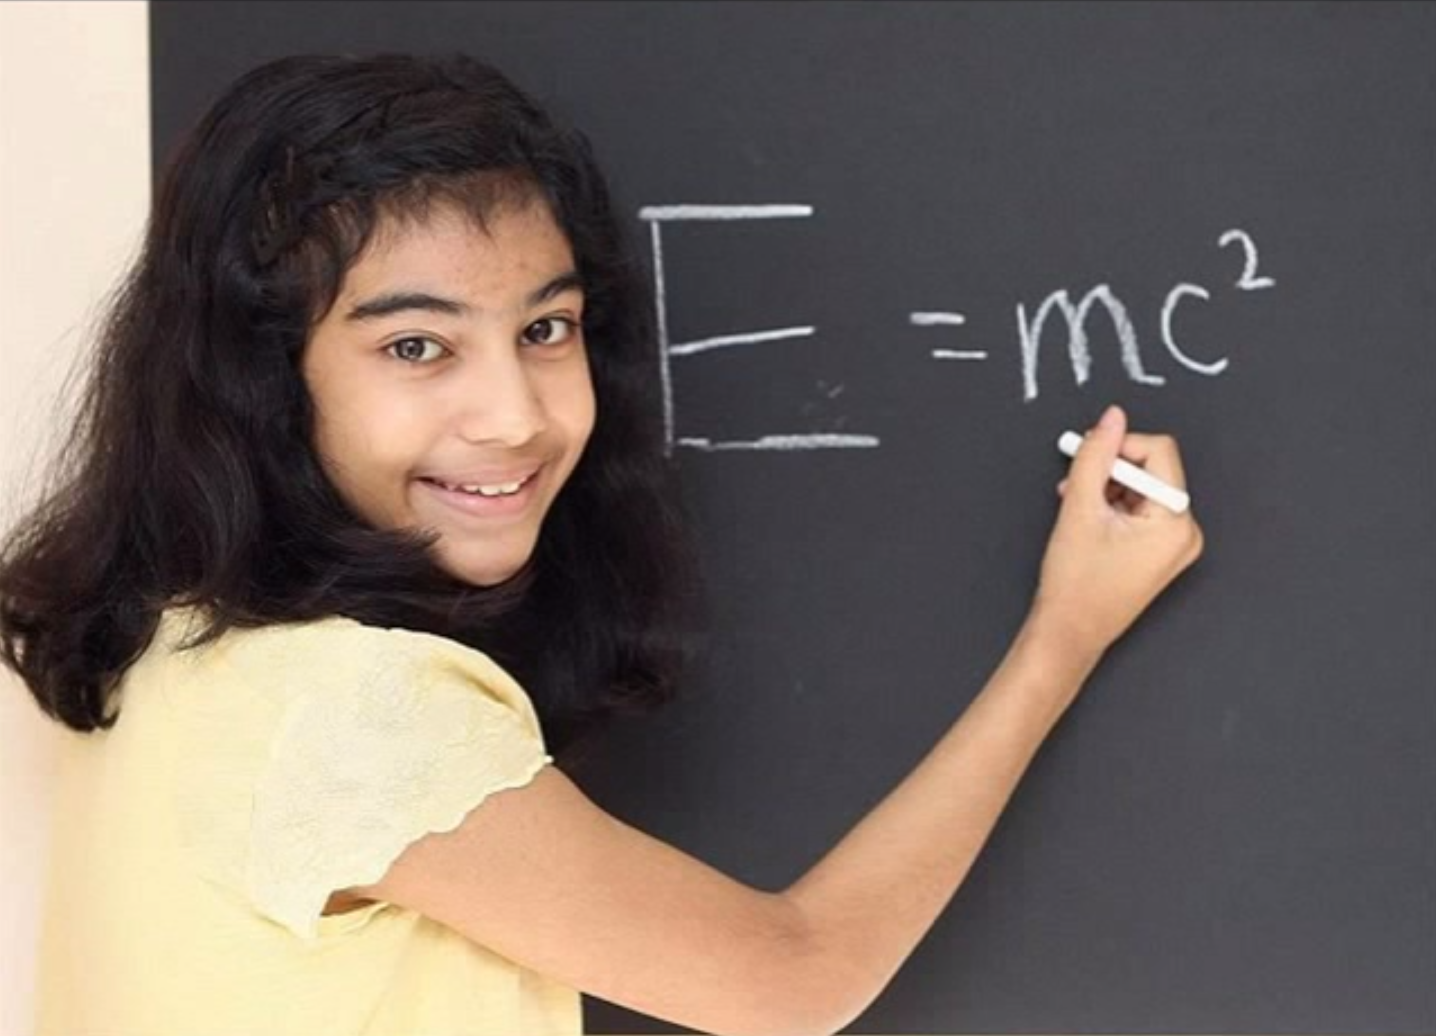 Girl, 12, Aces Mensa IQ Test, Beats Scores Of Einstein And Hawking UNILAD screen shot 2015 09 08 at 11.28.46 am5